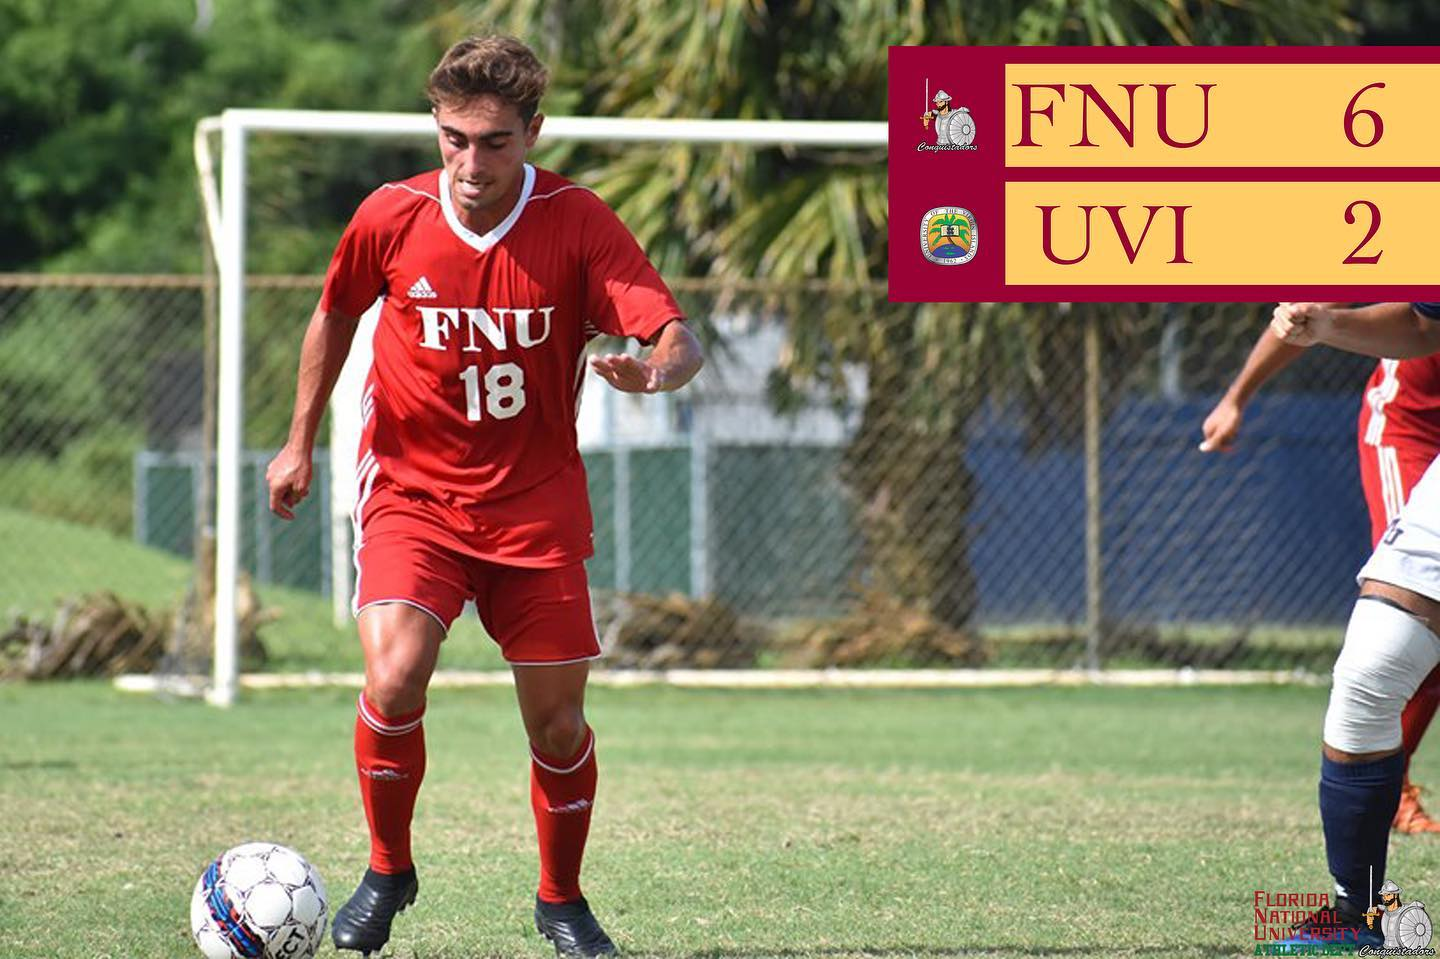 FNU men's soccer player and the score showing FNU 6 UVI 2